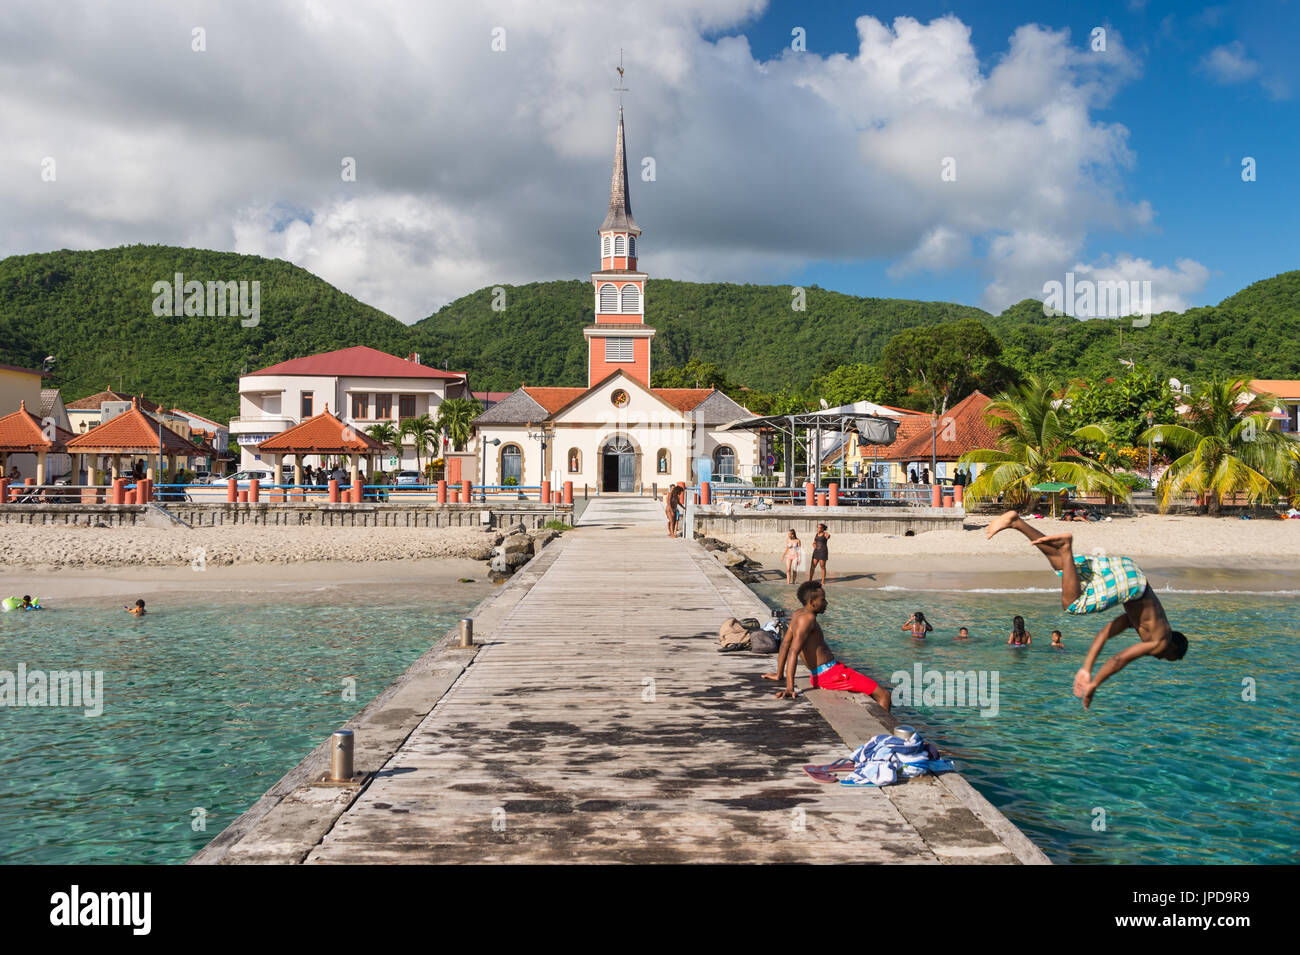 Petite Anse d'Arlet village, with Saint Henri Church and pontoon, in Martinique - Stock Image